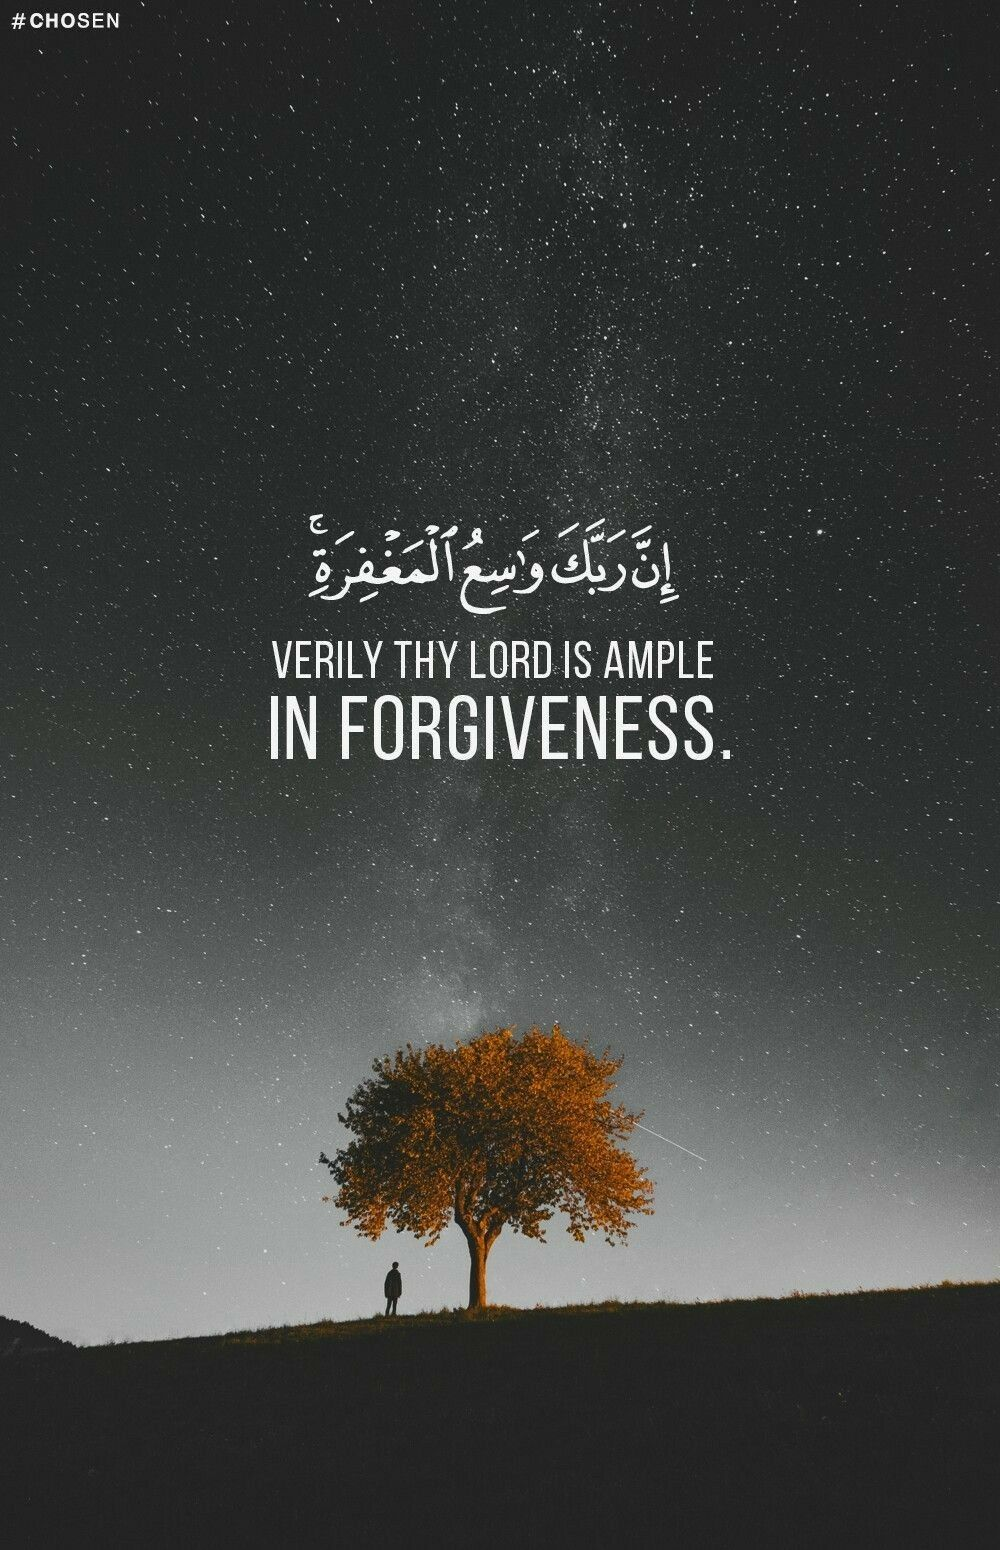 Pin by Mariam on Allah ❤ | Islamic quotes wallpaper, Quran